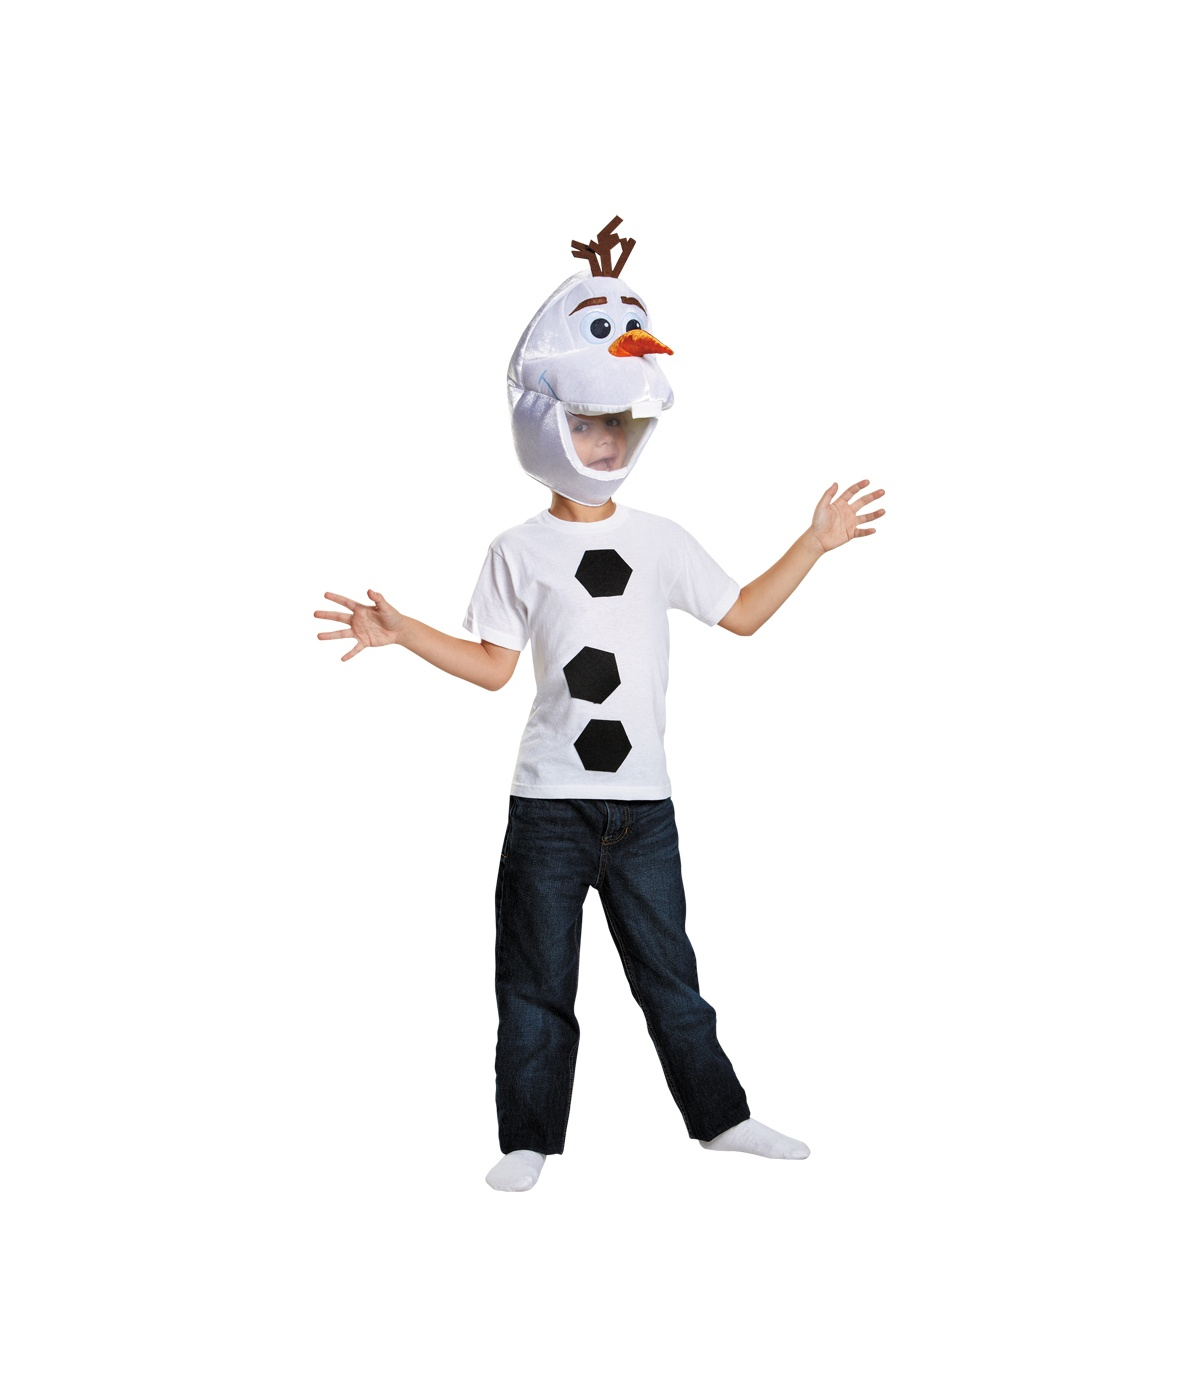 Frozen Olaf Boys Disney Costume Kit  sc 1 st  Wonder Costumes & Frozen Olaf Boys Disney Costume Kit - Disney Costumes